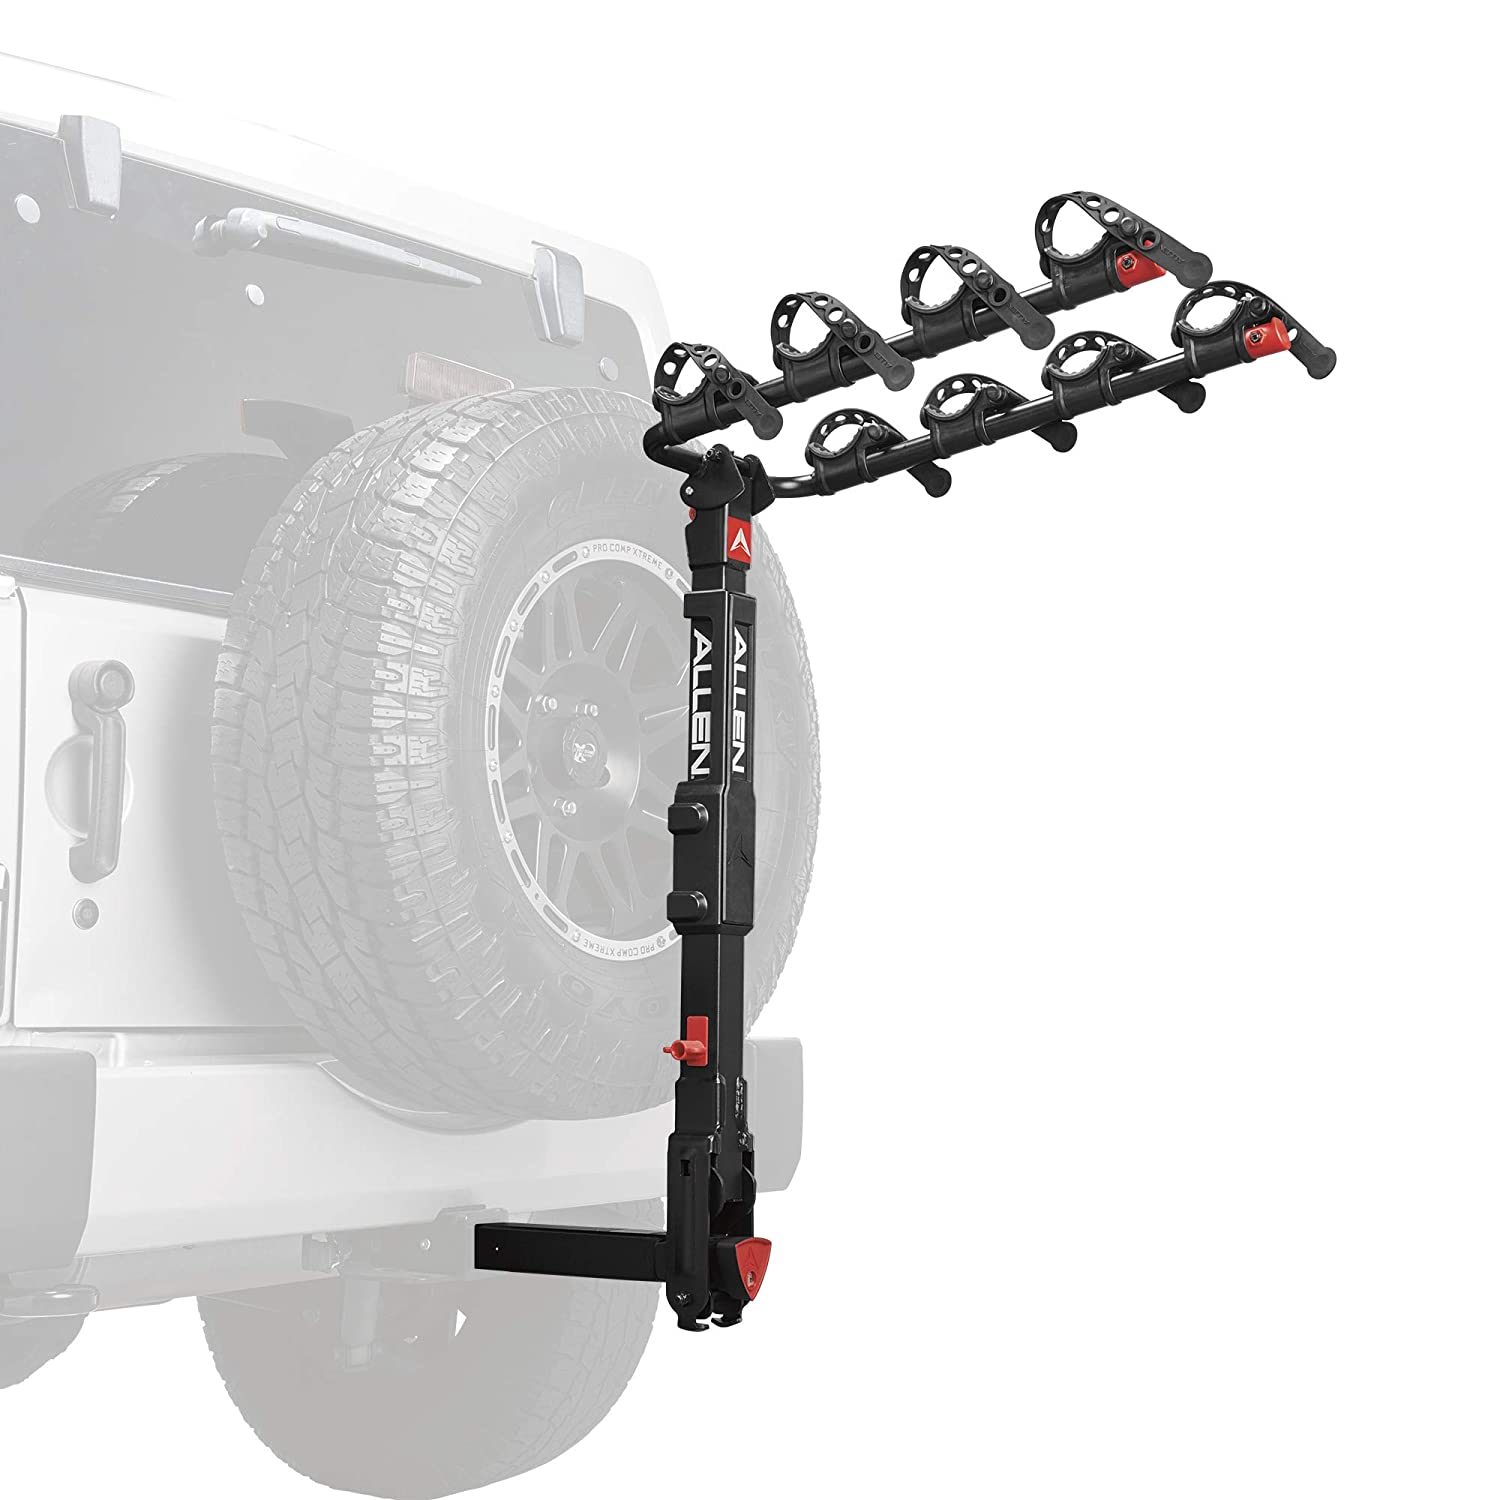 Premier Locking Quick Release 4-Bike Carrier for 2 in Hitch on Vehicles with Spare tire